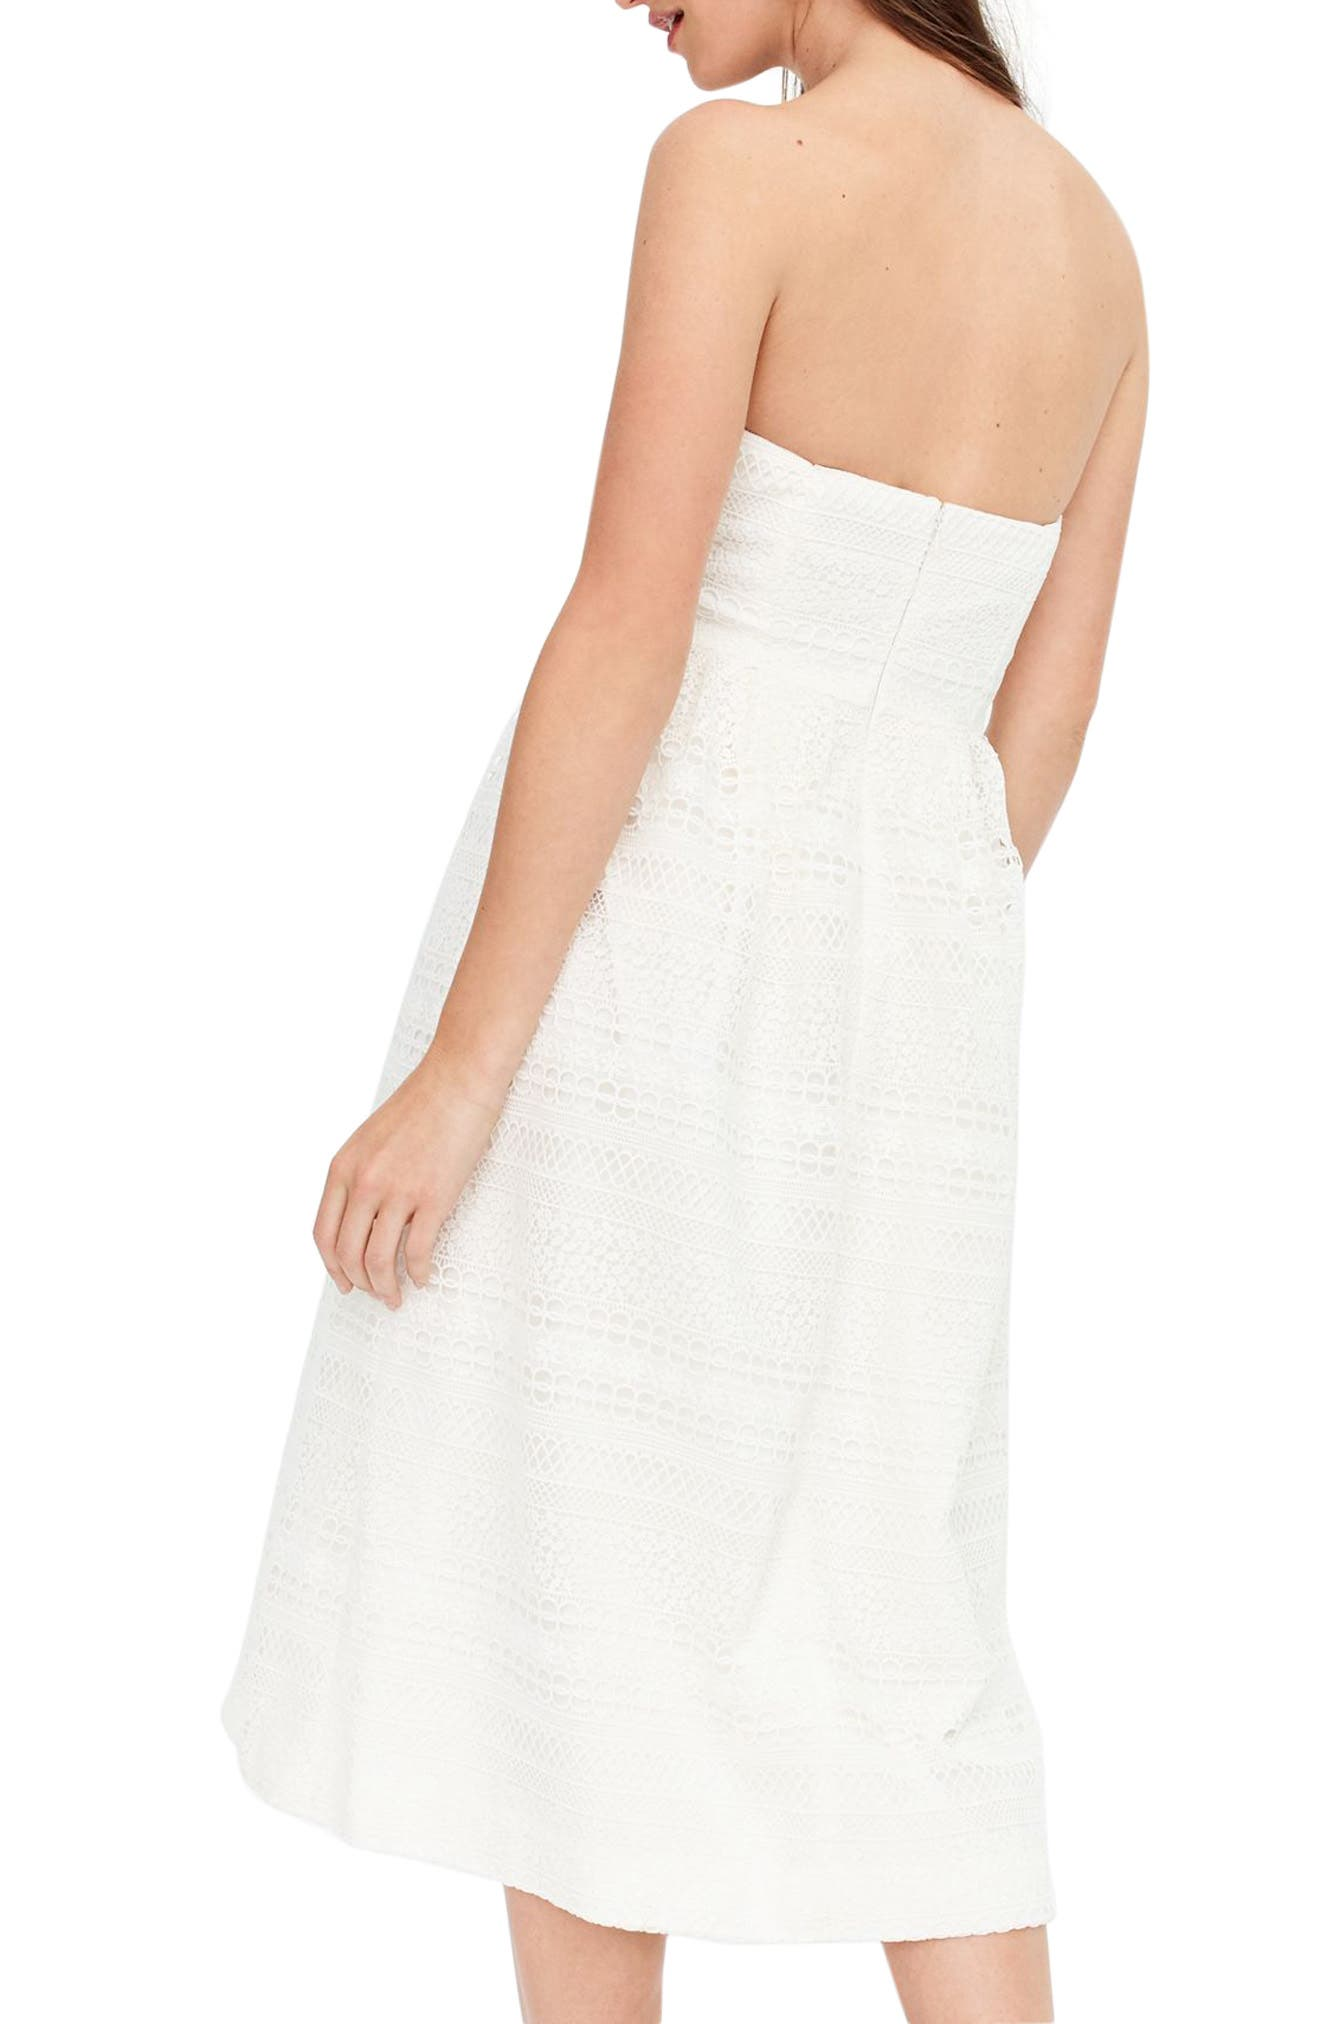 Strapless Lace Dress,                             Alternate thumbnail 3, color,                             Ivory